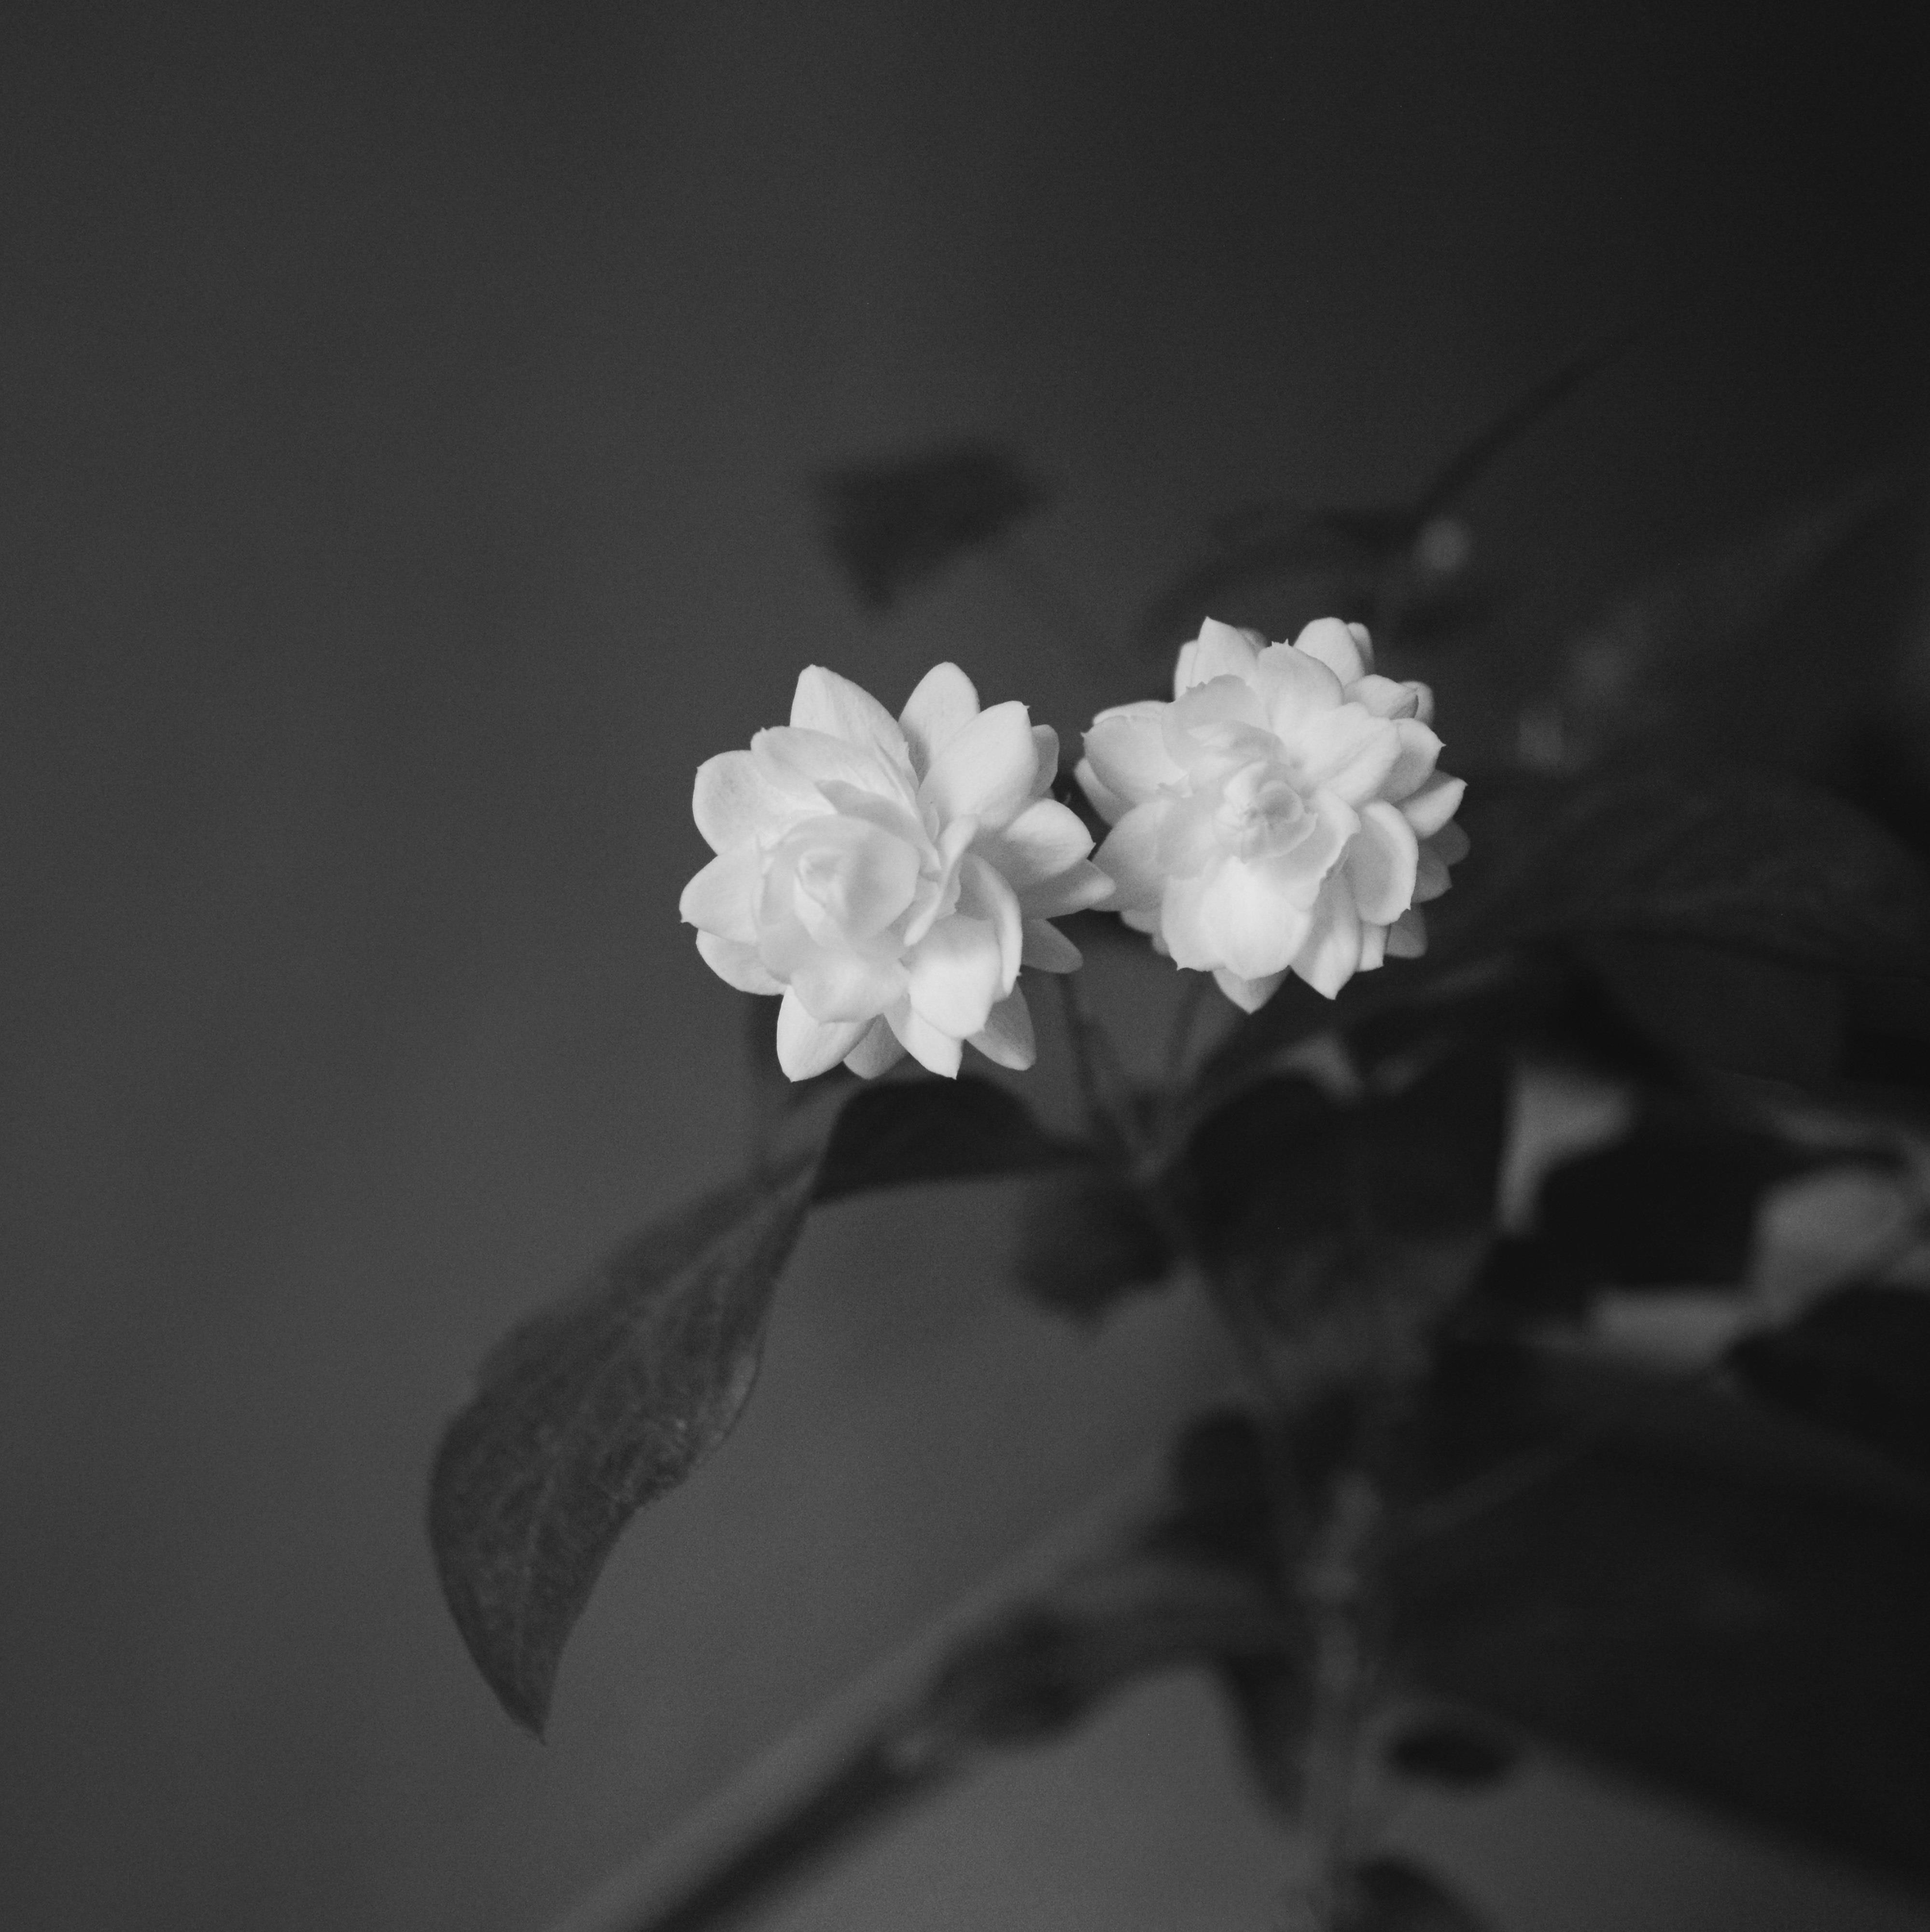 grayscale photo of two white clustered flowers